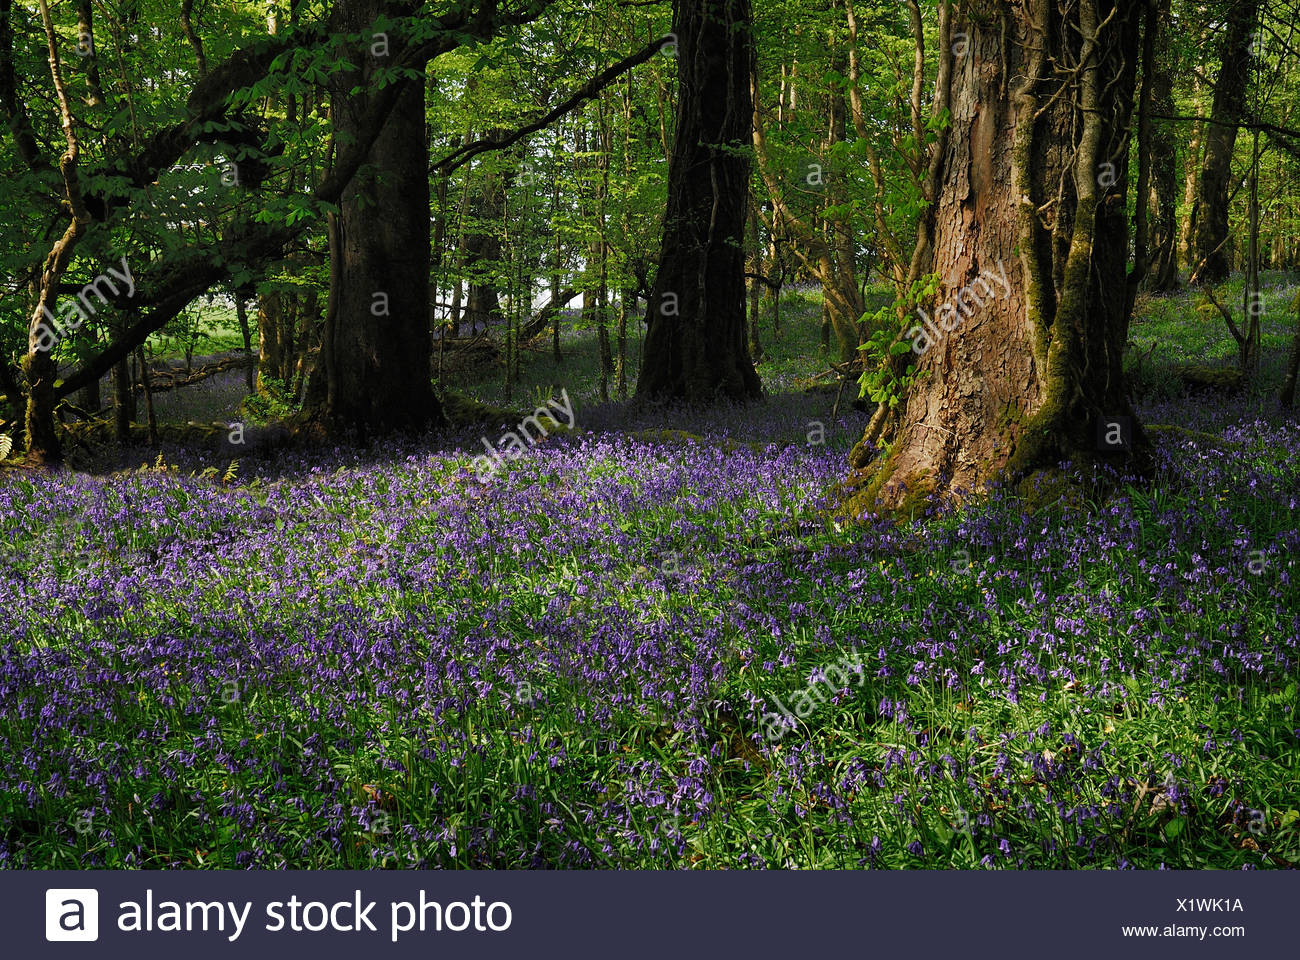 Bluebell, Hyacinthoides non-scripta. Lough Key Forest Park, woodland with bluebells. Ireland, County Roscommon, Boyle, - Stock Image